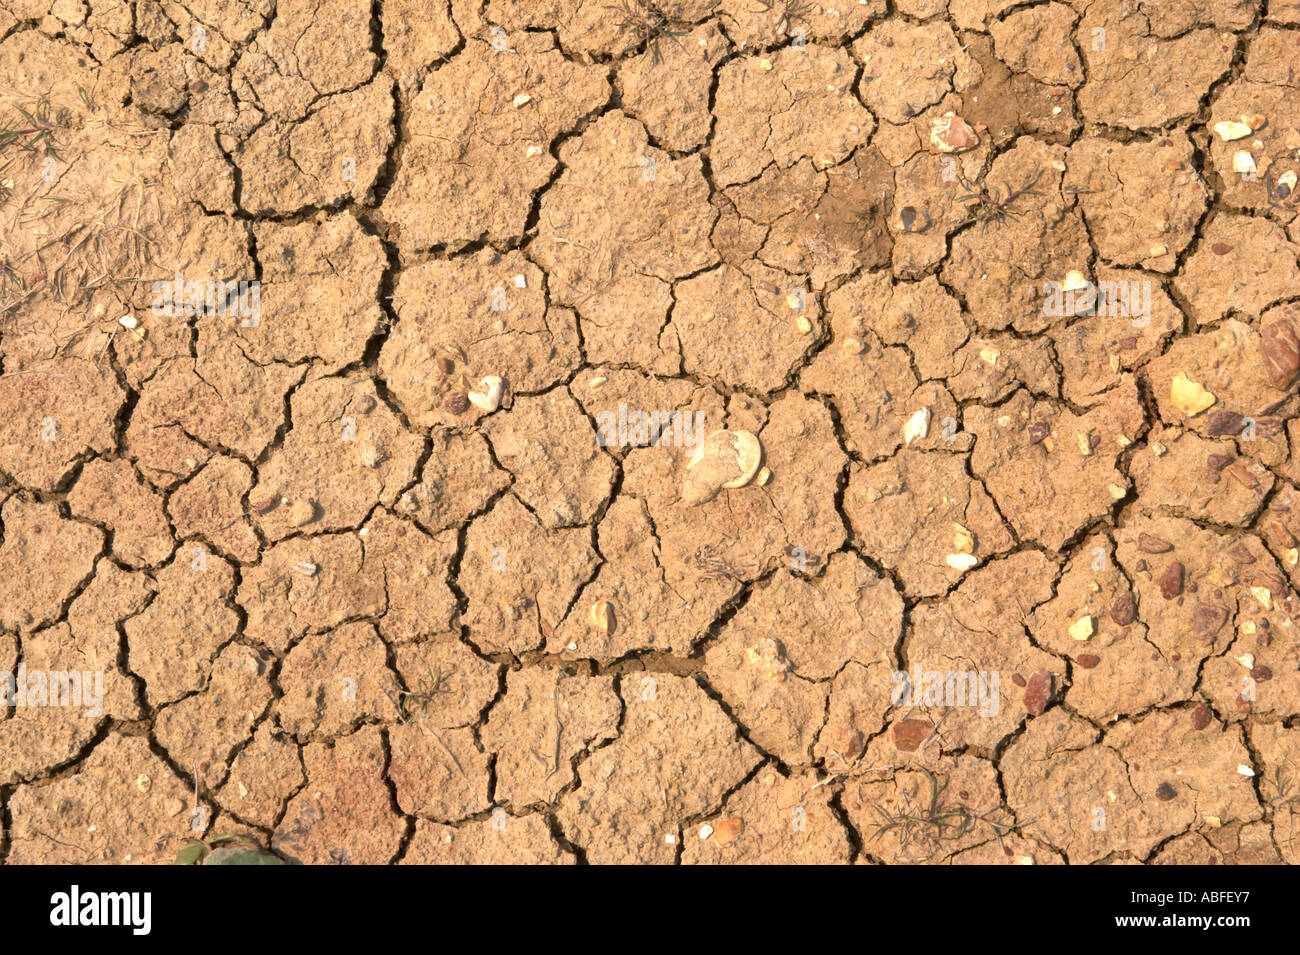 drought dry cracked scorched earth - Stock Image